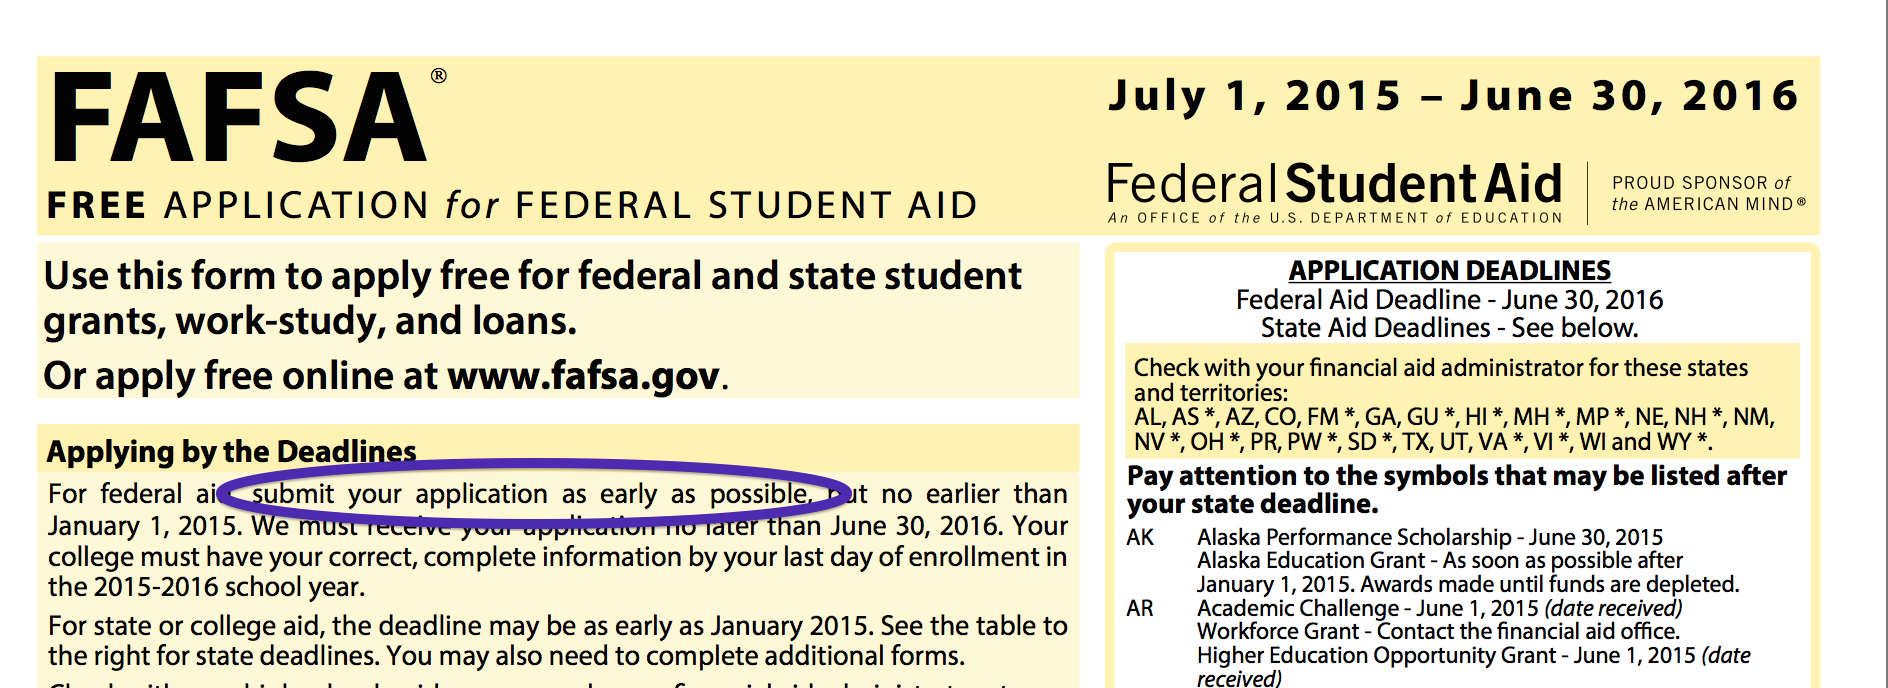 FAFSA deadlines vary wildly from state to state and from school to school, so it just makes sense to get yours filled out right away.